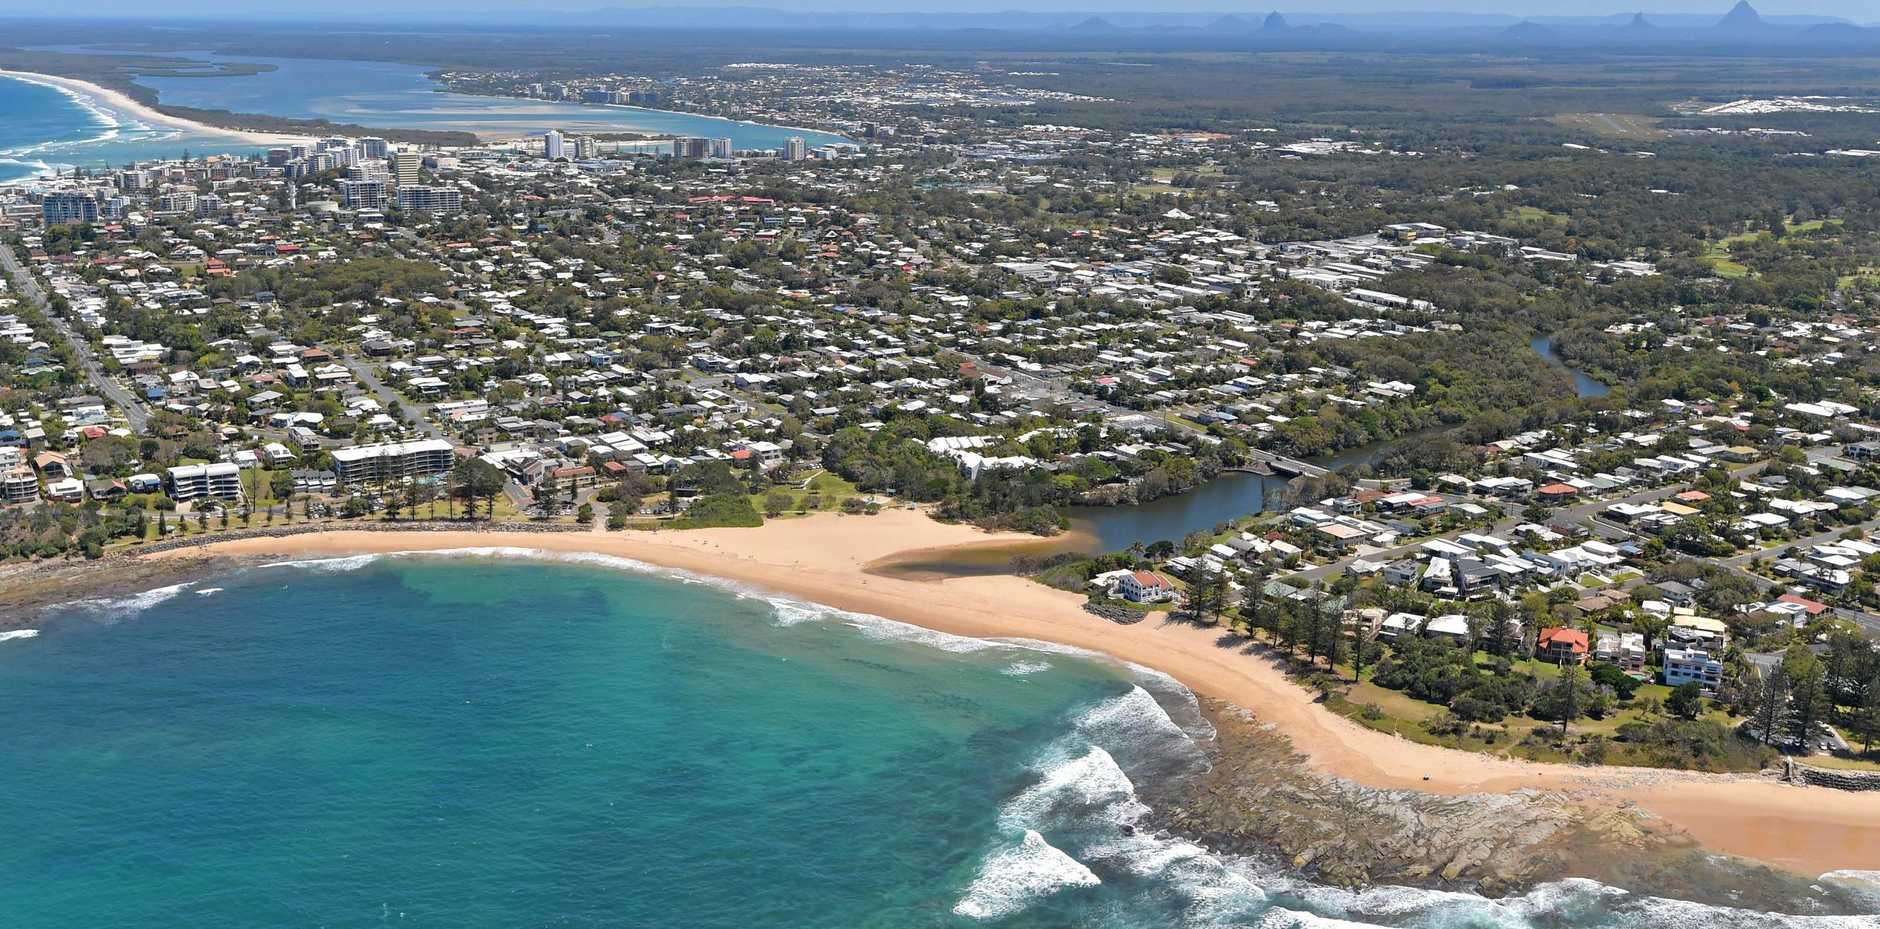 Sunshine Coast land values have risen by more than 10 per cent since the previous State Government valuation.